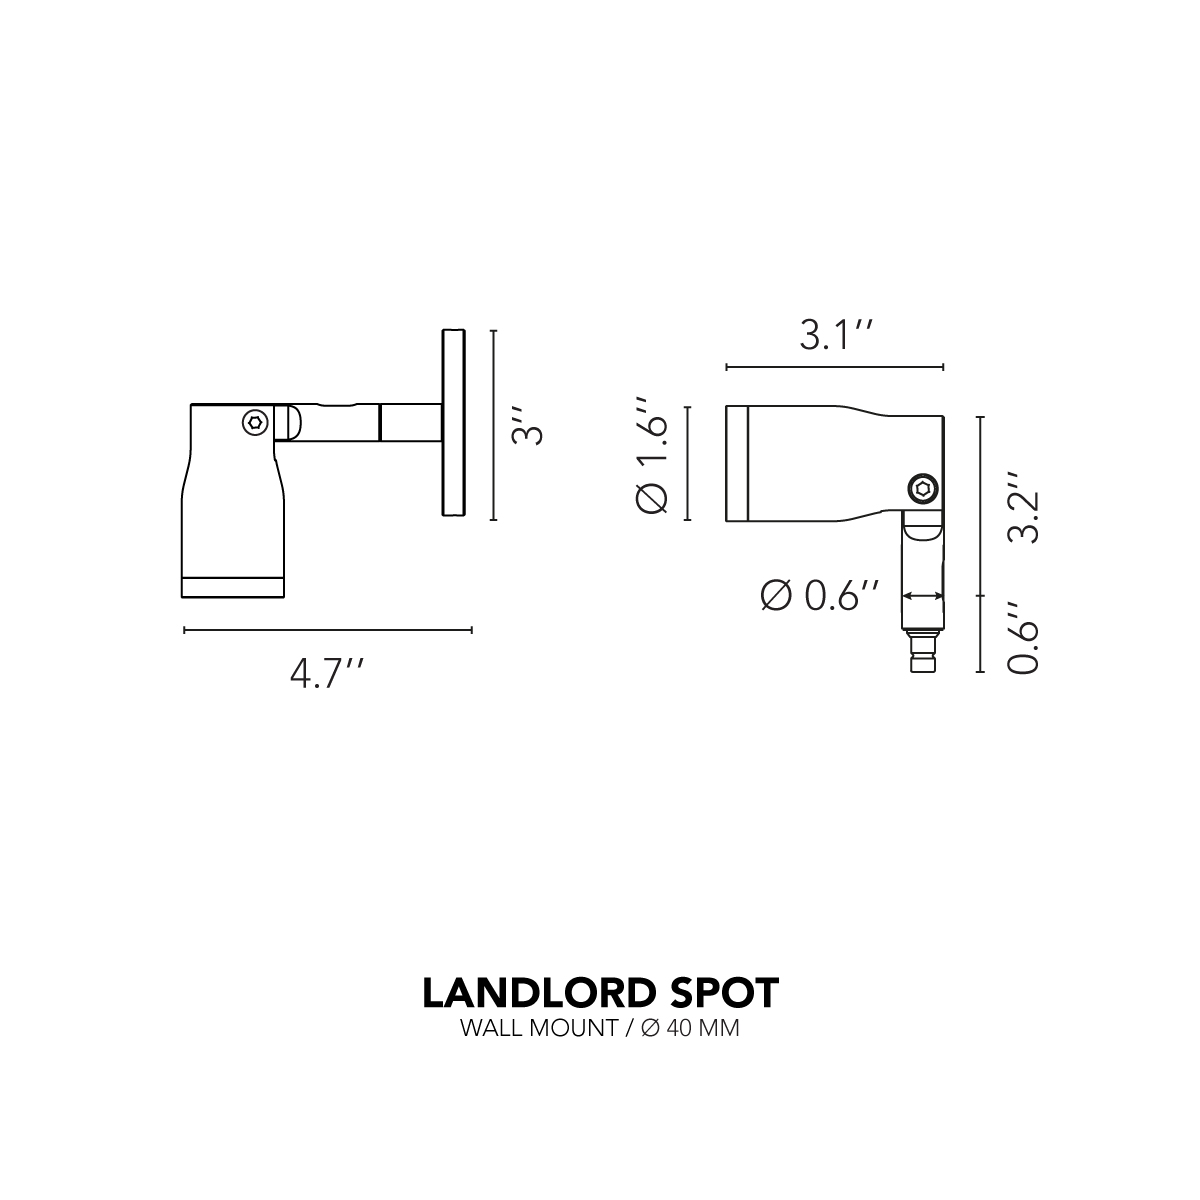 Landlord Spot D40 - Wall-Mount